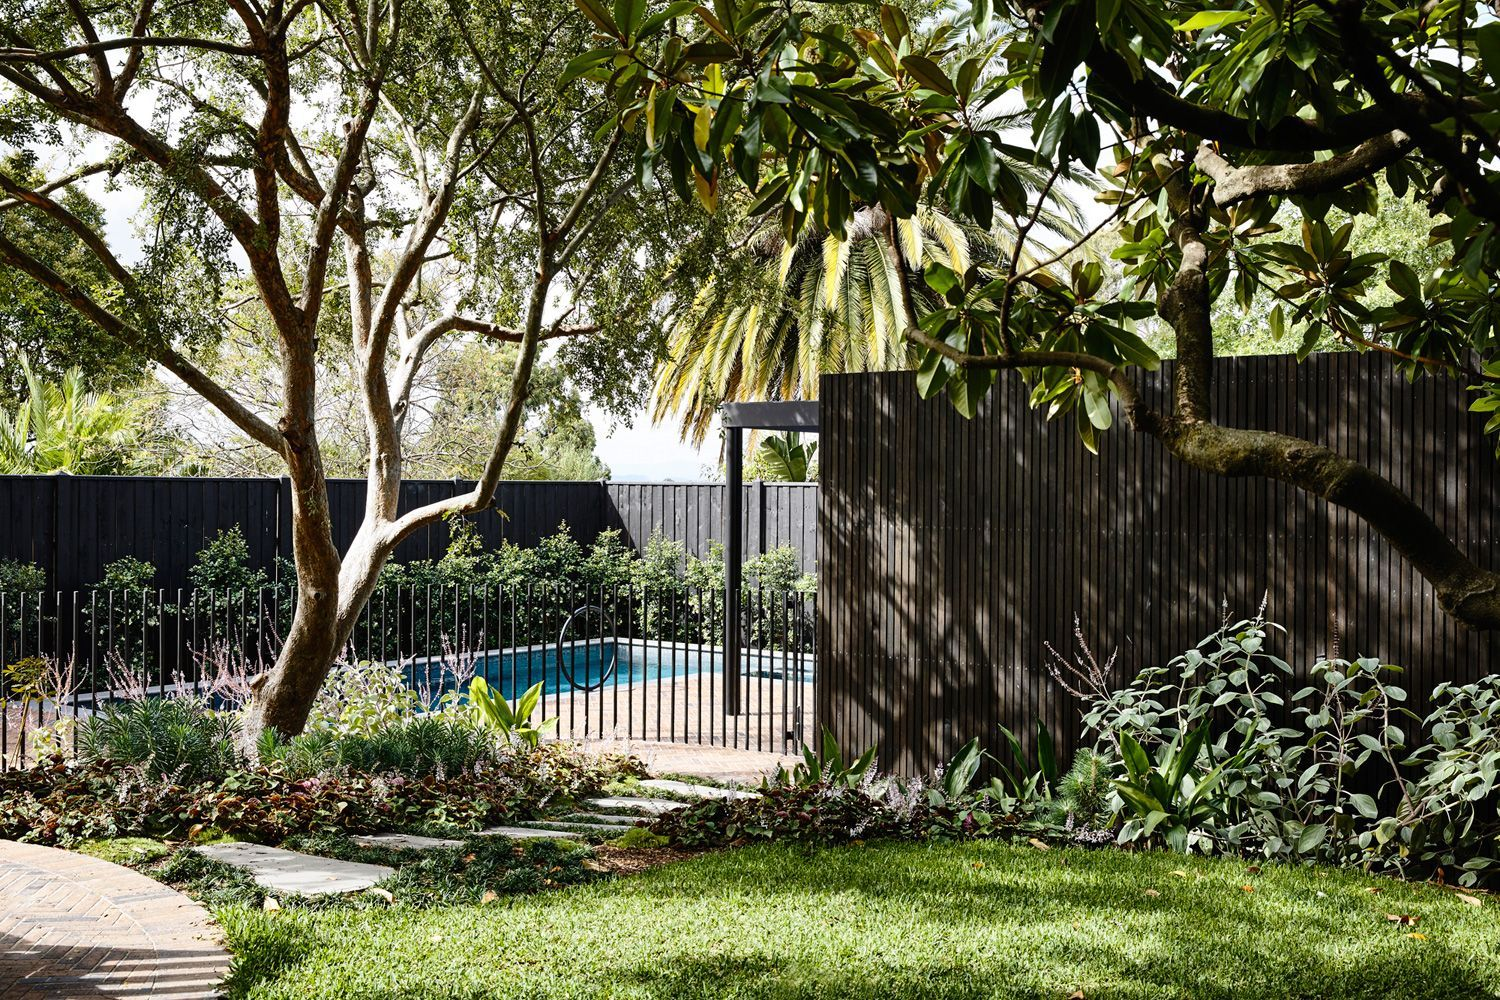 11 Graceful Garden Fence Stakes Home Depot Ideas In 2020 Fence Design